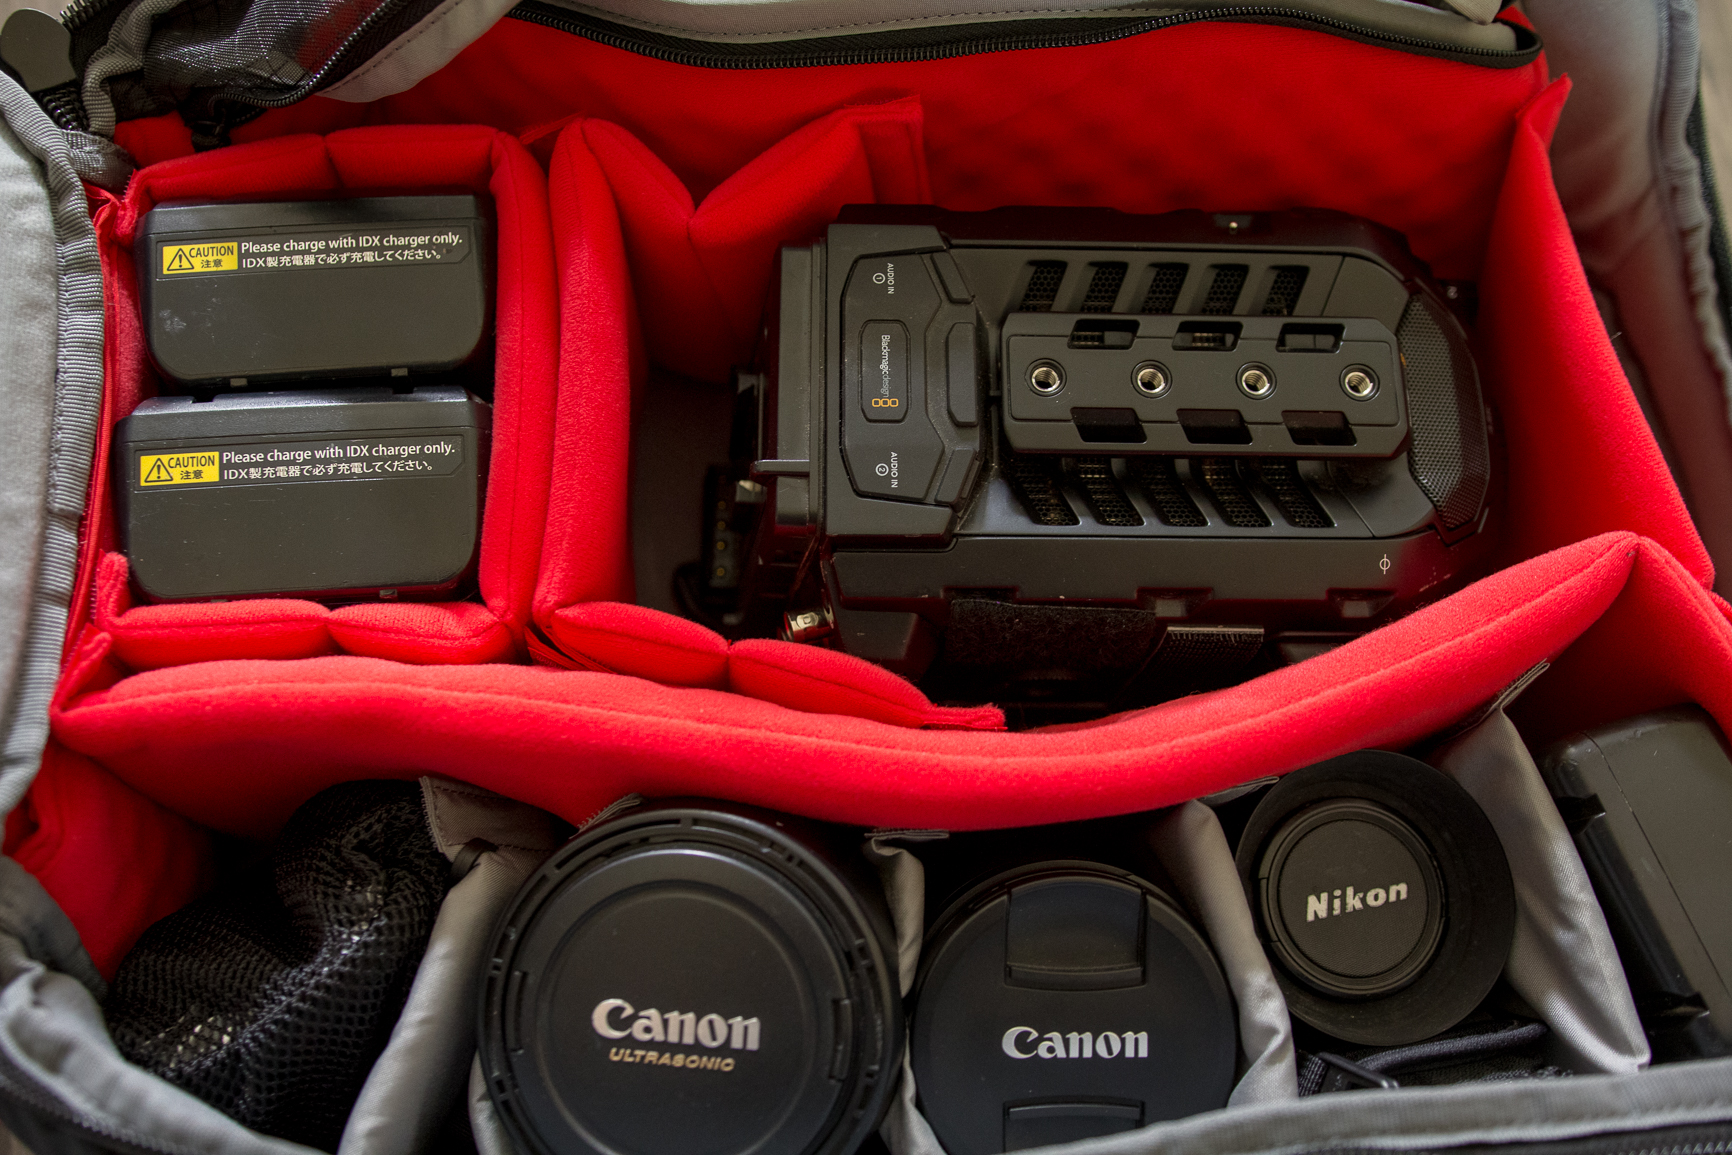 Manfrotto Pro Light Cinematic Camera Bags Review: Balance and Expand 1